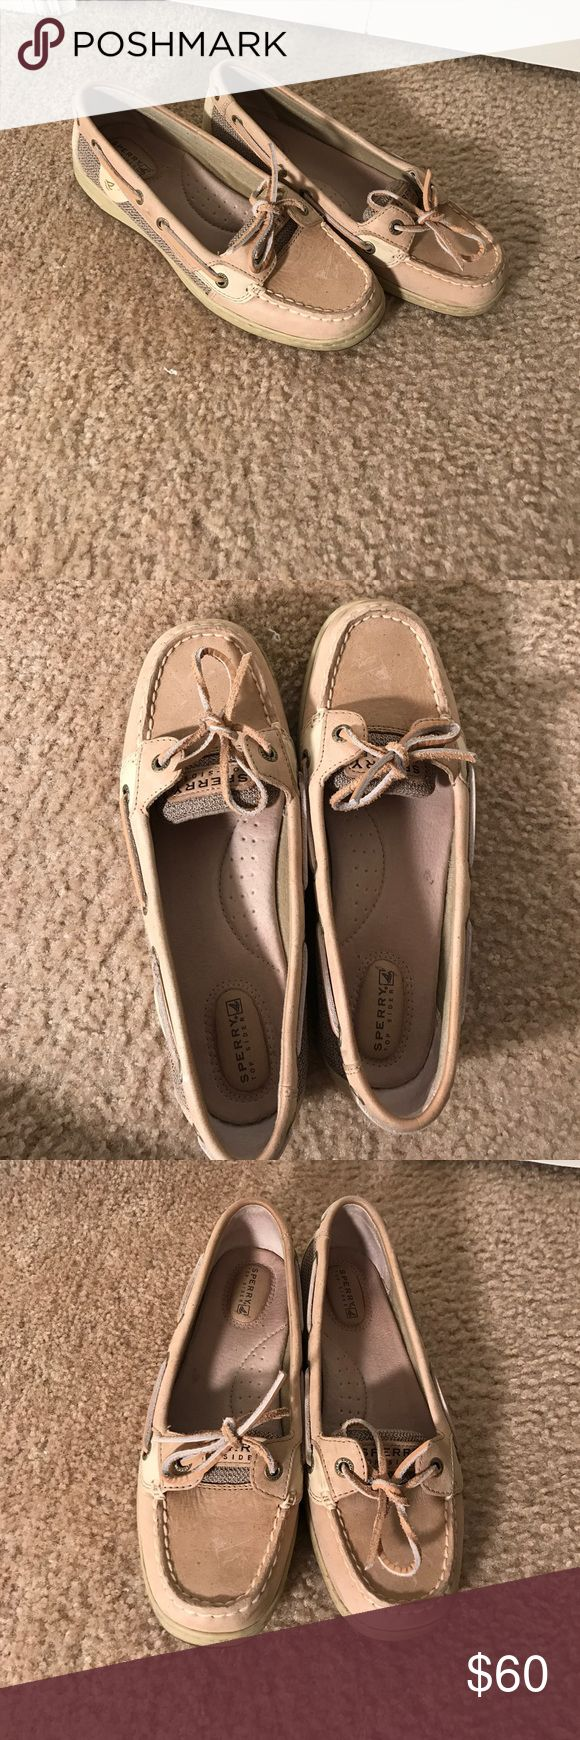 Sperry Angelfish Shoes Sperry Angelfish Boat Shoes. Worn twice, excellent condition. Sperry Shoes Flats & Loafers